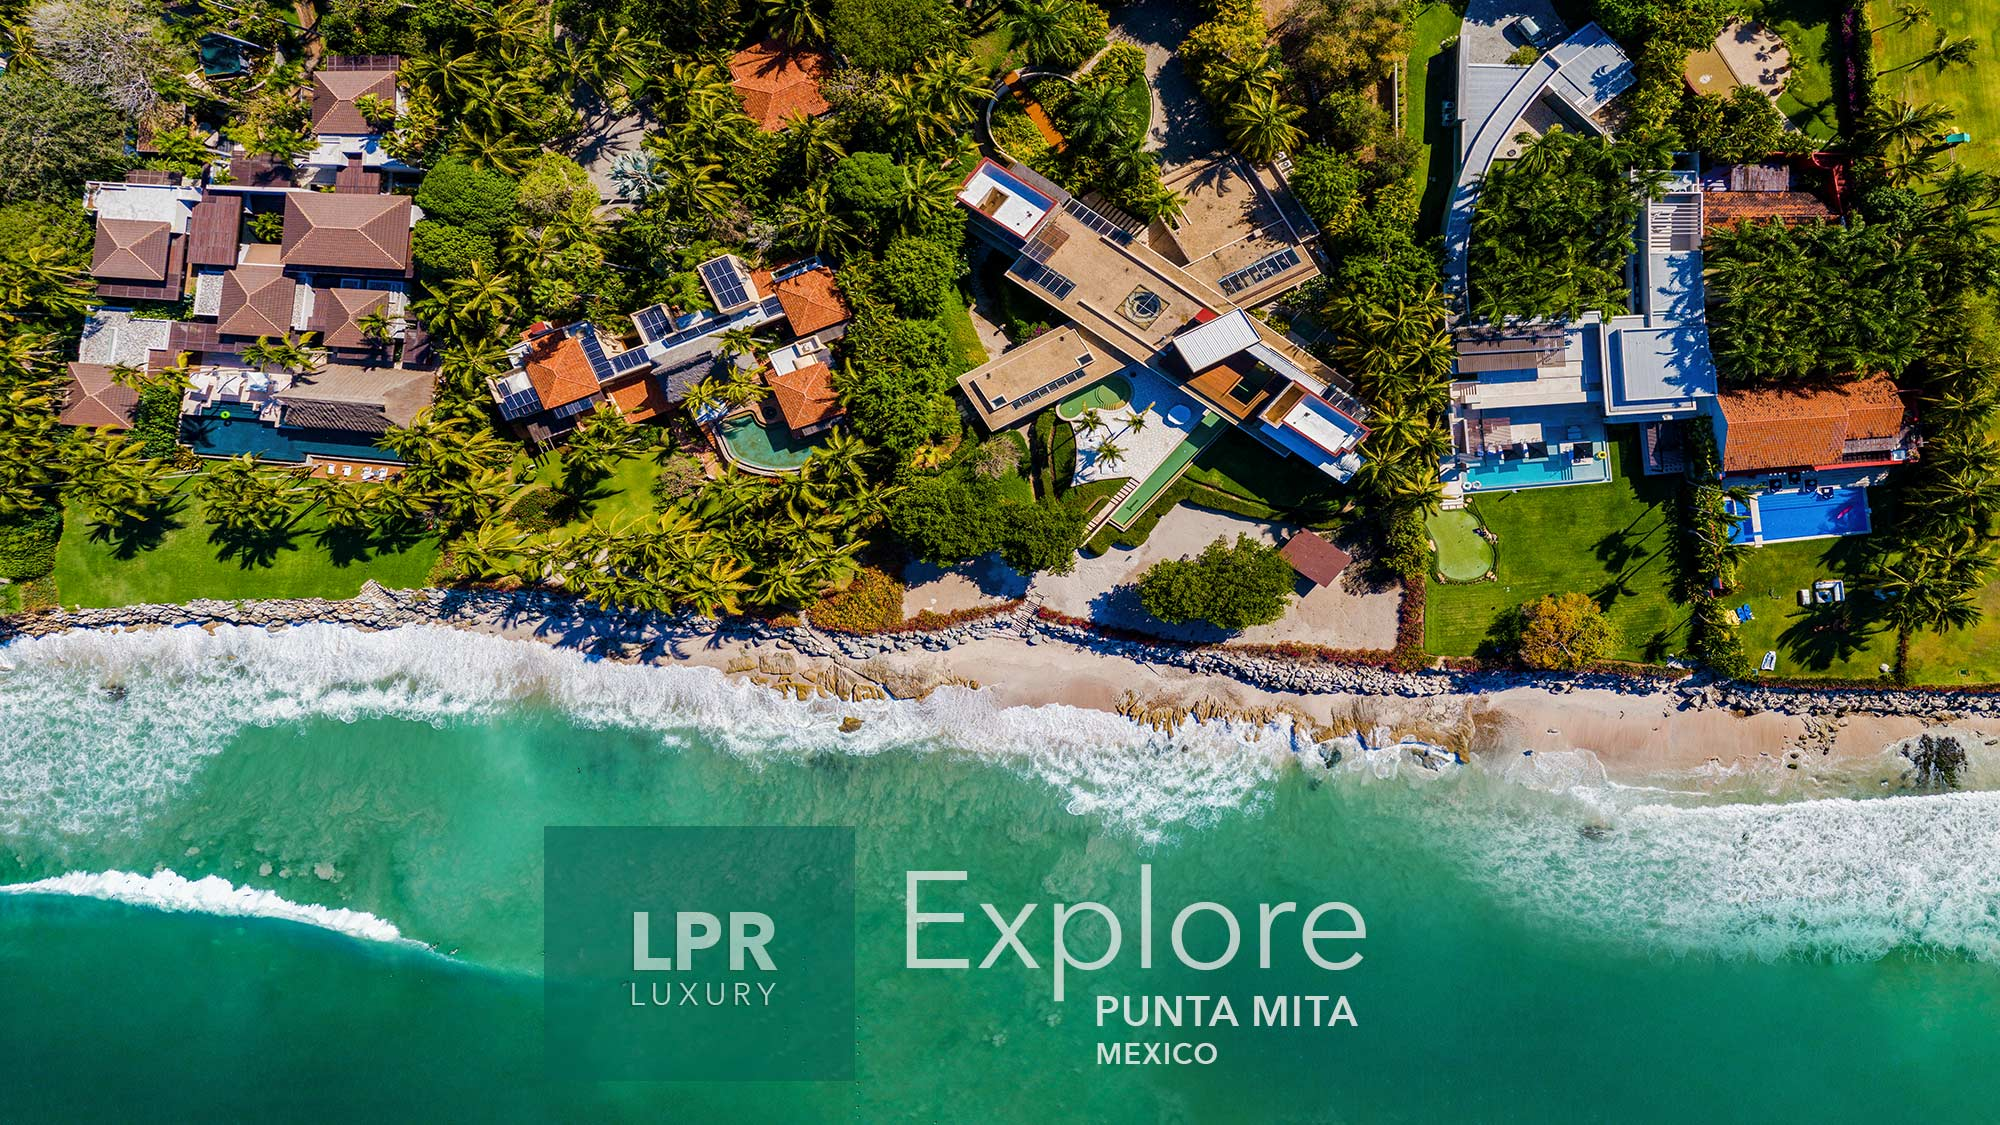 Explore Punta Mita - Riviera Nayarit, Mexico - The best luxury resort residential real estate in Mexico.